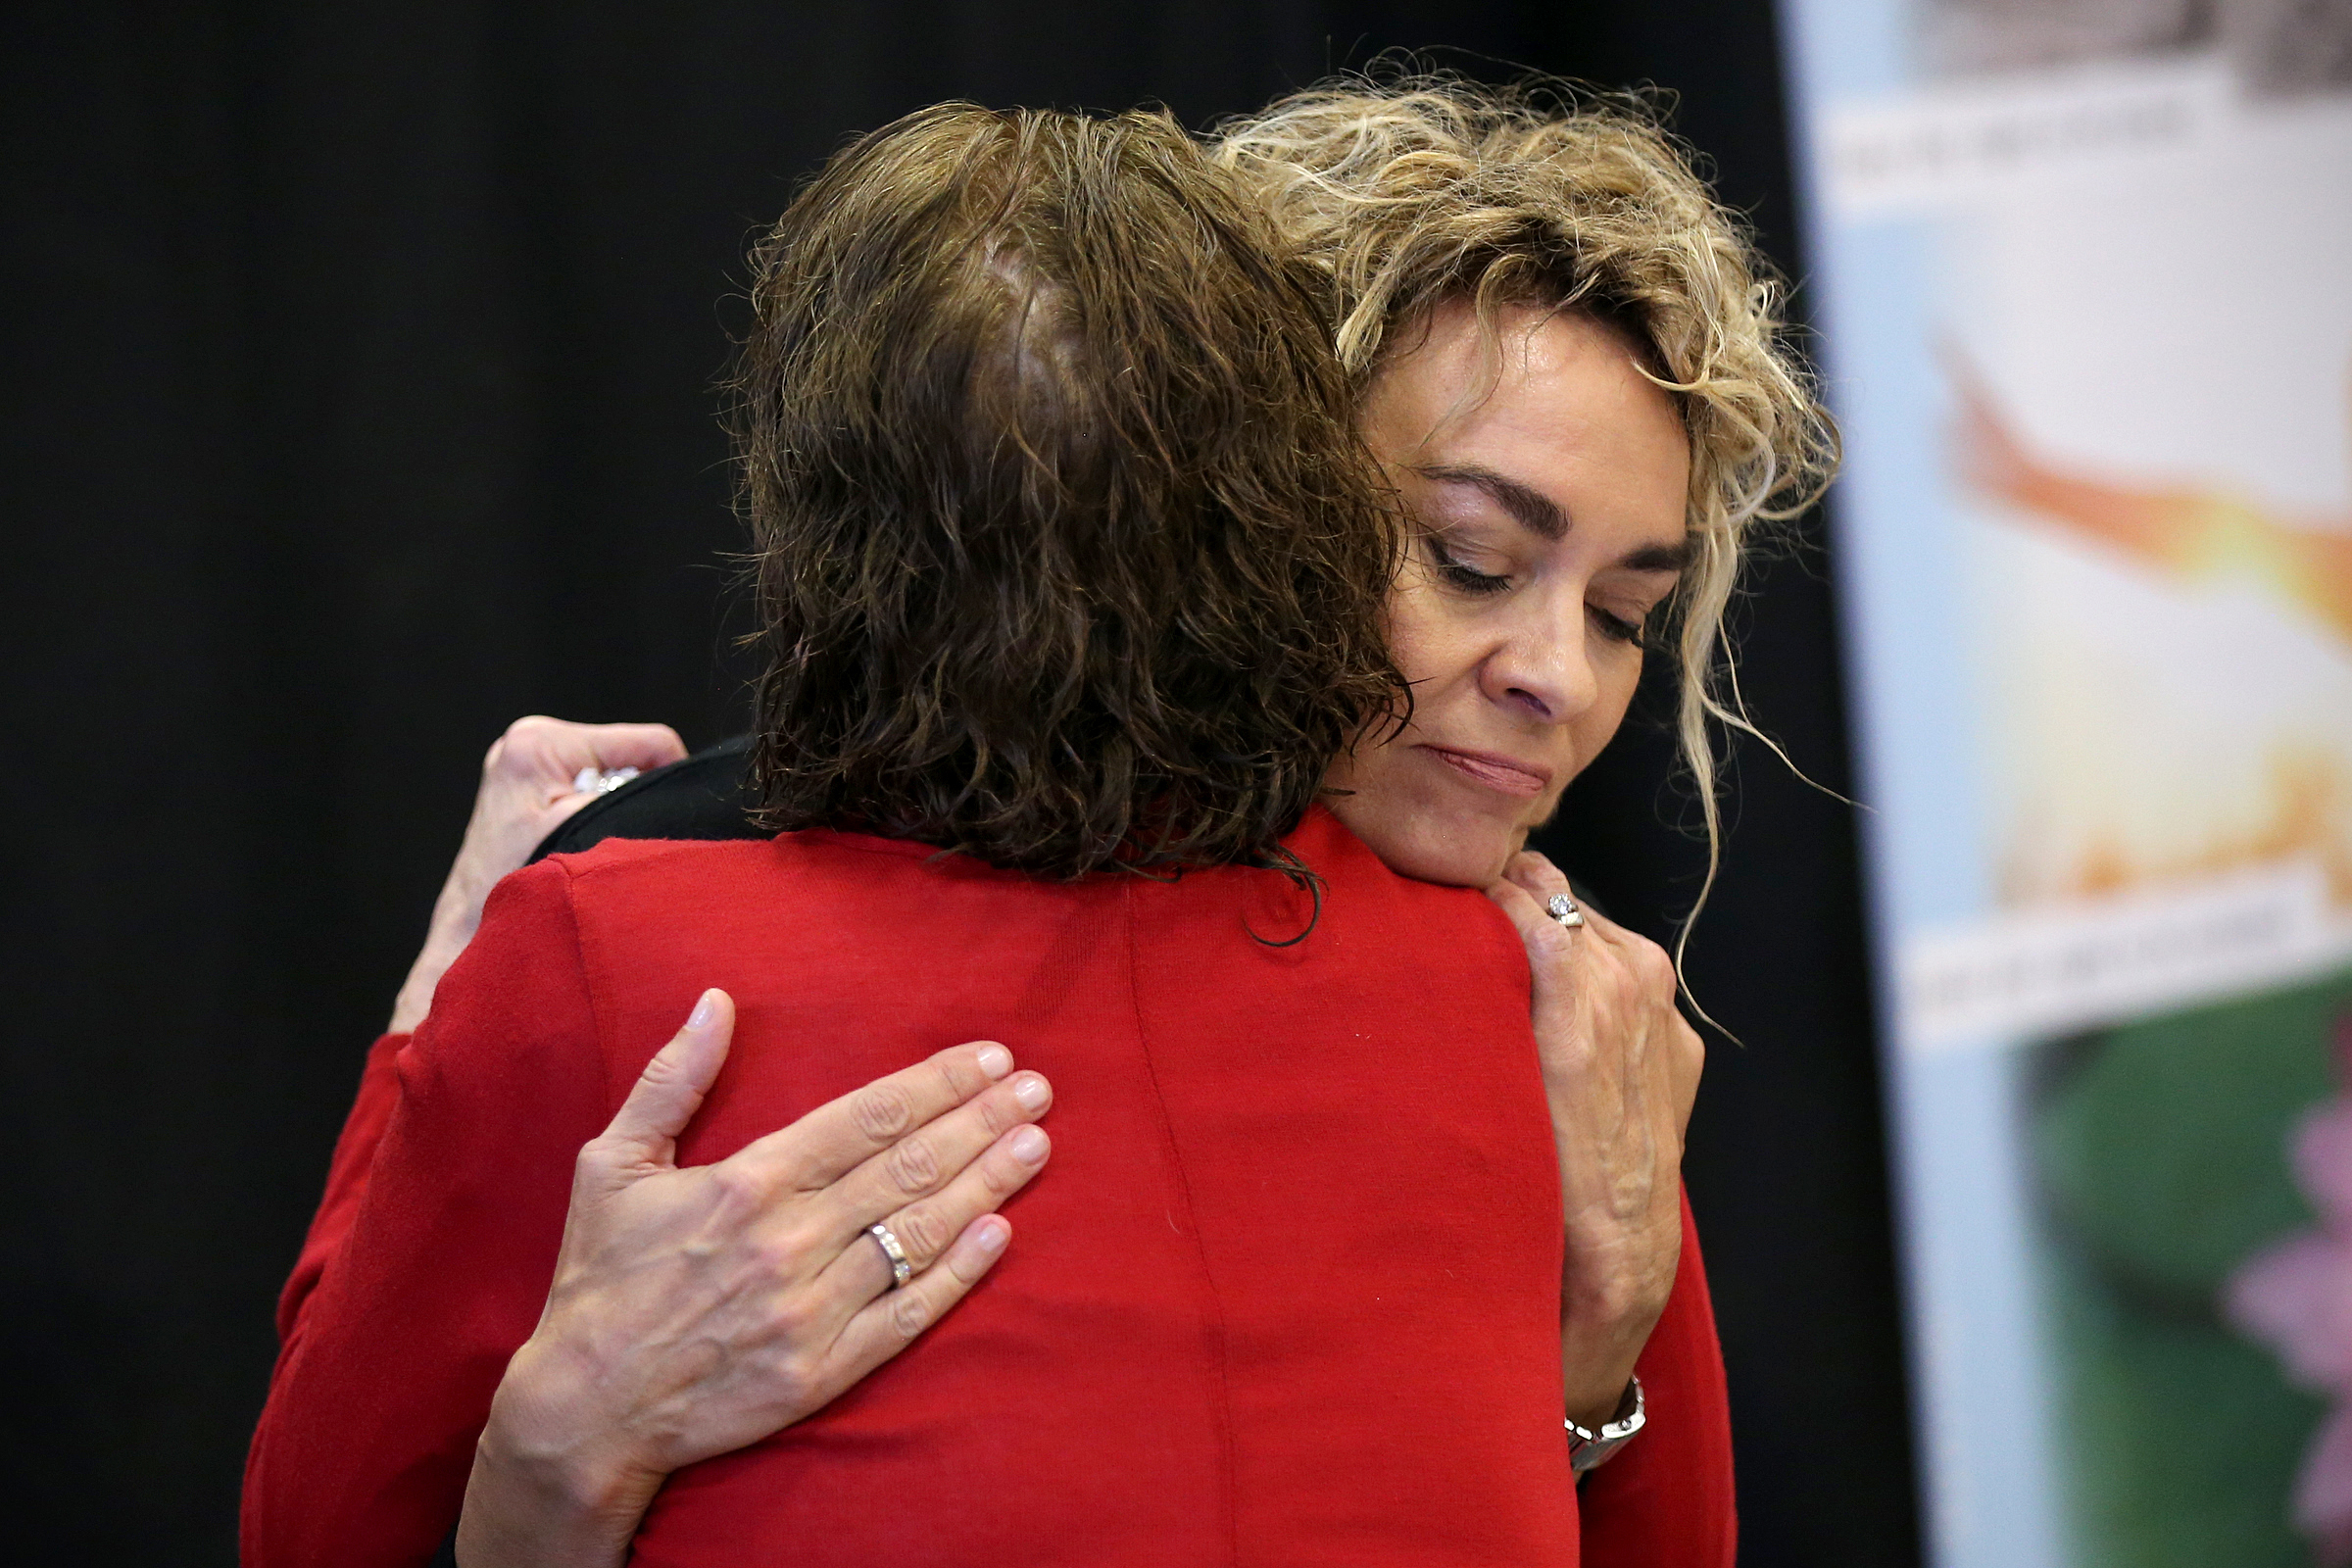 Bill Cosby accusers Sunni Welles, left, and Stacey Pinkerton embrace during a news conference with several other accusers at Savior Hall in Norristown Pa., on Tuesday, Sept. 25, 2018. Cosby was sentenced to prison for sexually assaulting Andrea Constand.